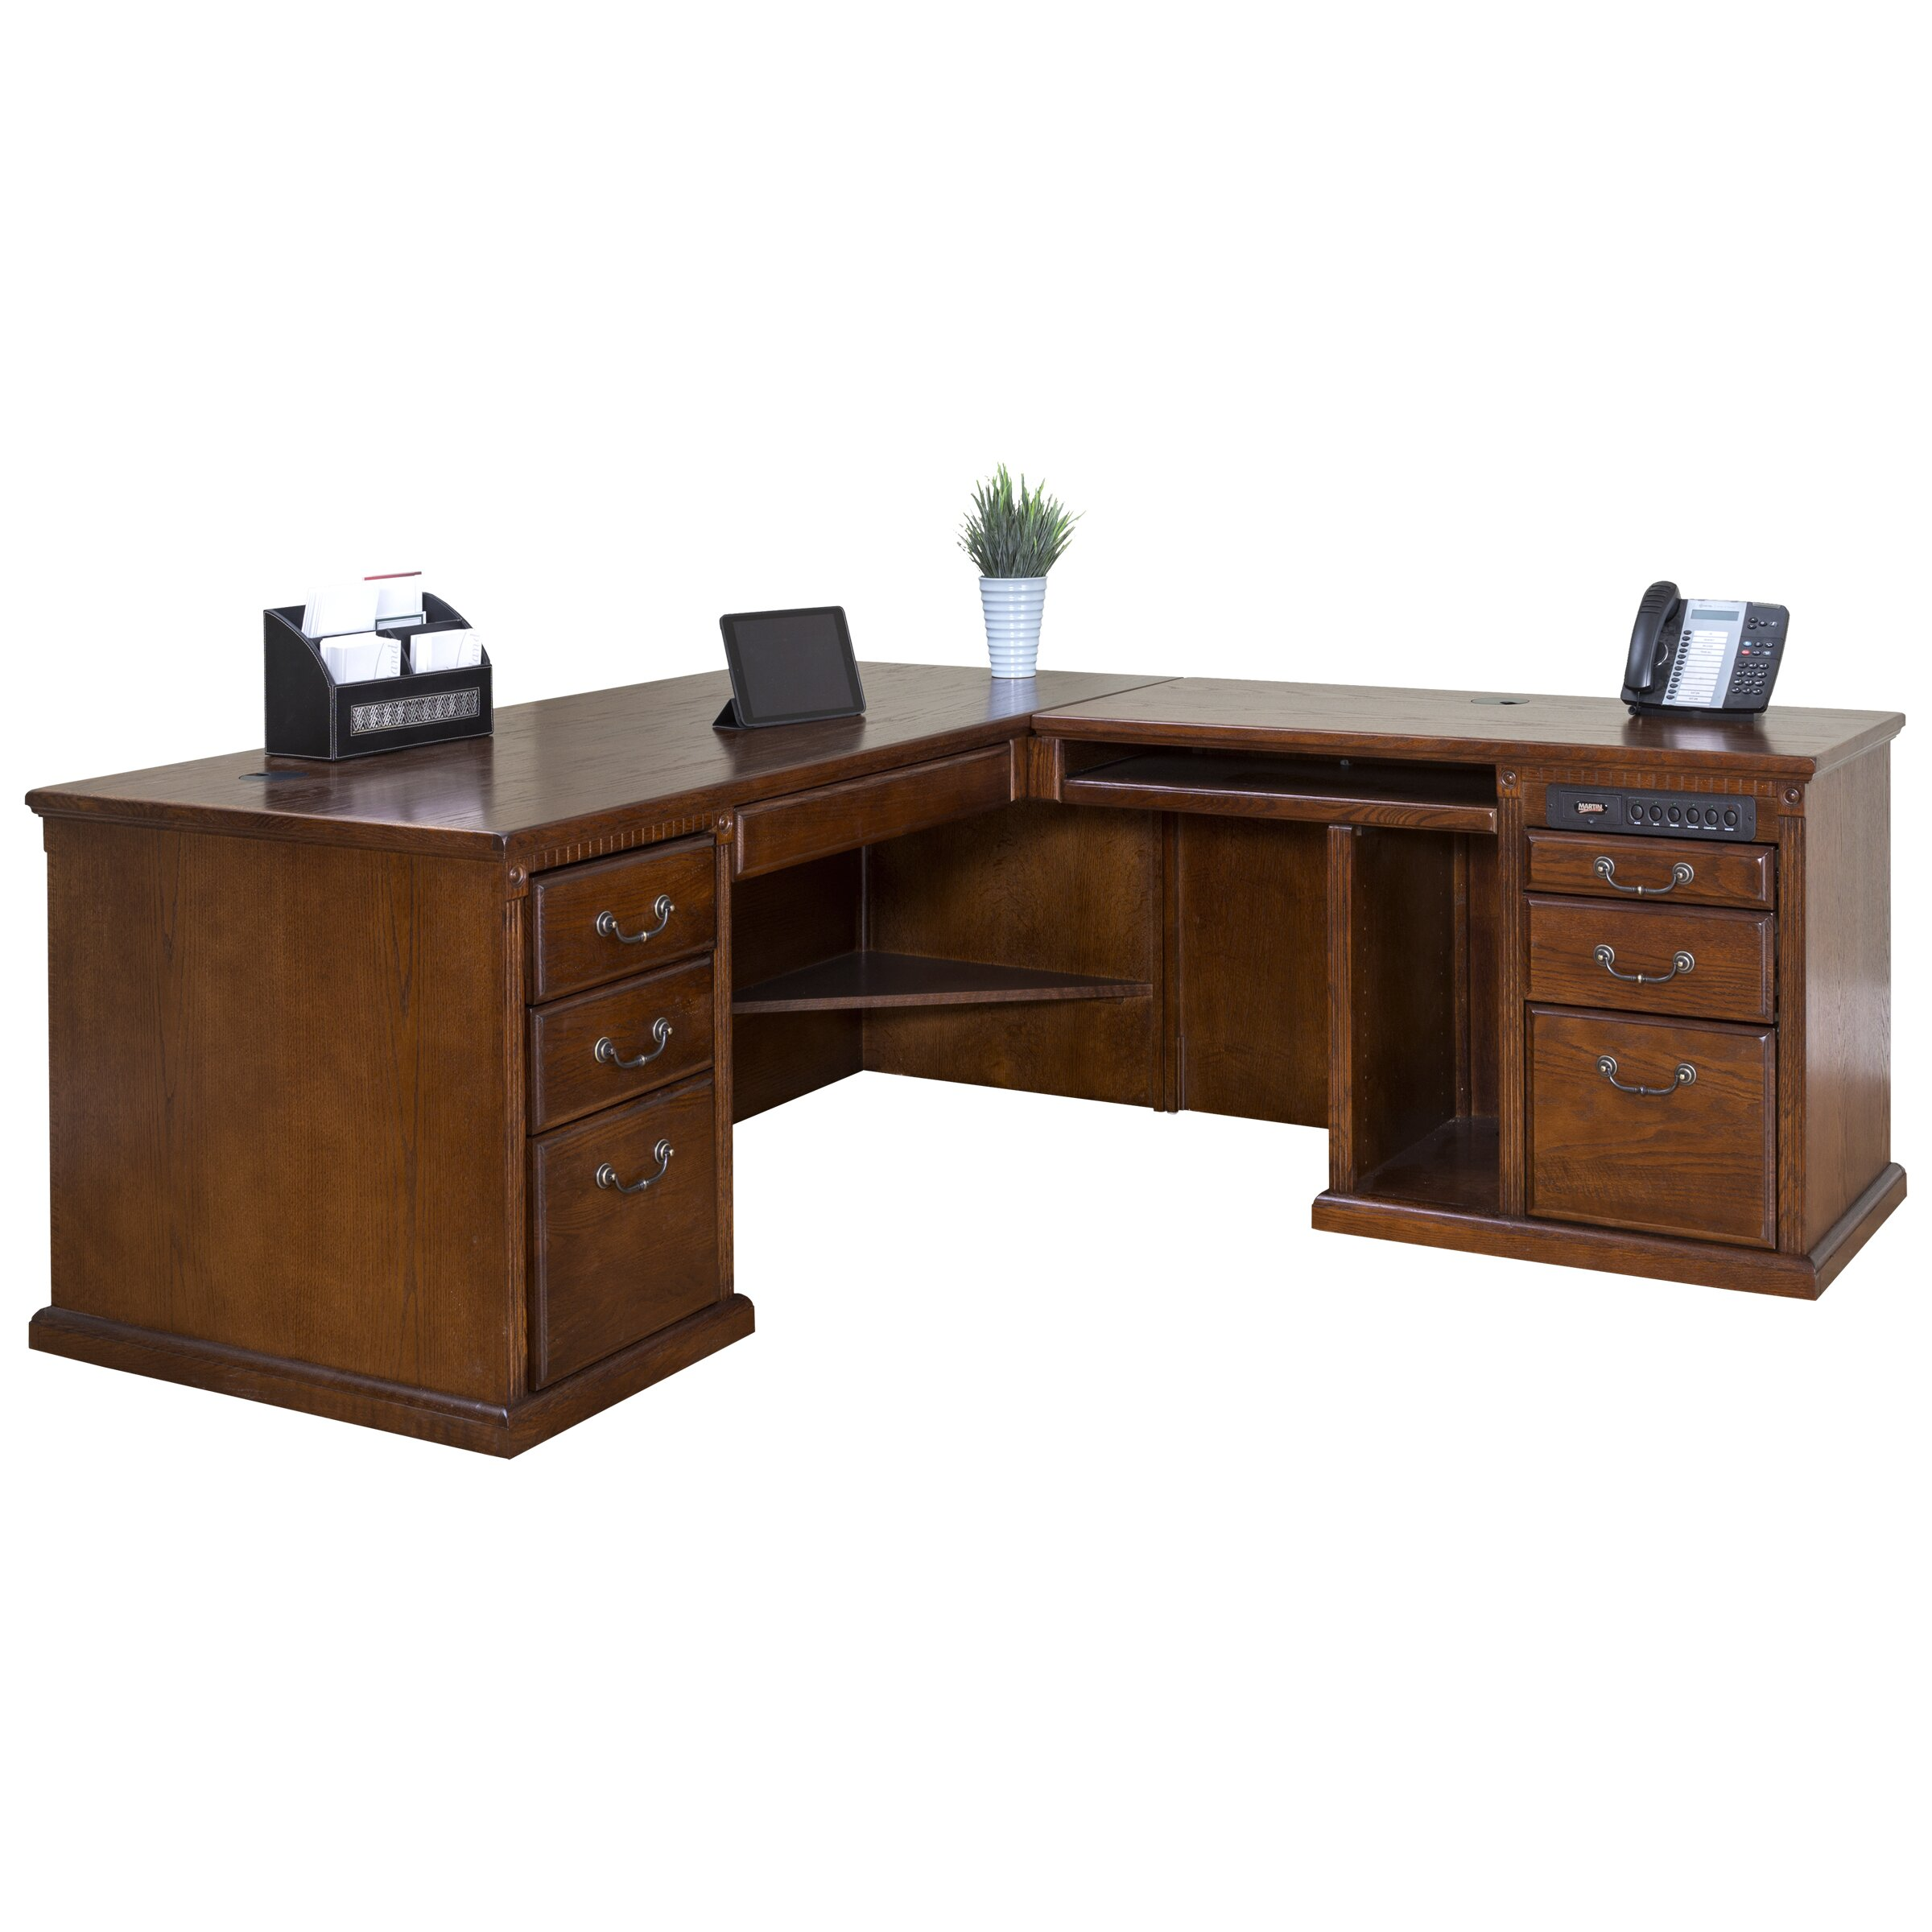 Kathy Ireland Home By Martin Furniture Huntington Oxford. Large Writing Desk. Barnwood Kitchen Table. Wall Standing Desk. Music Workstation Desk. Corner Desk And Chair. Oversized Desk. Desks For Artists. Small Corner Desks